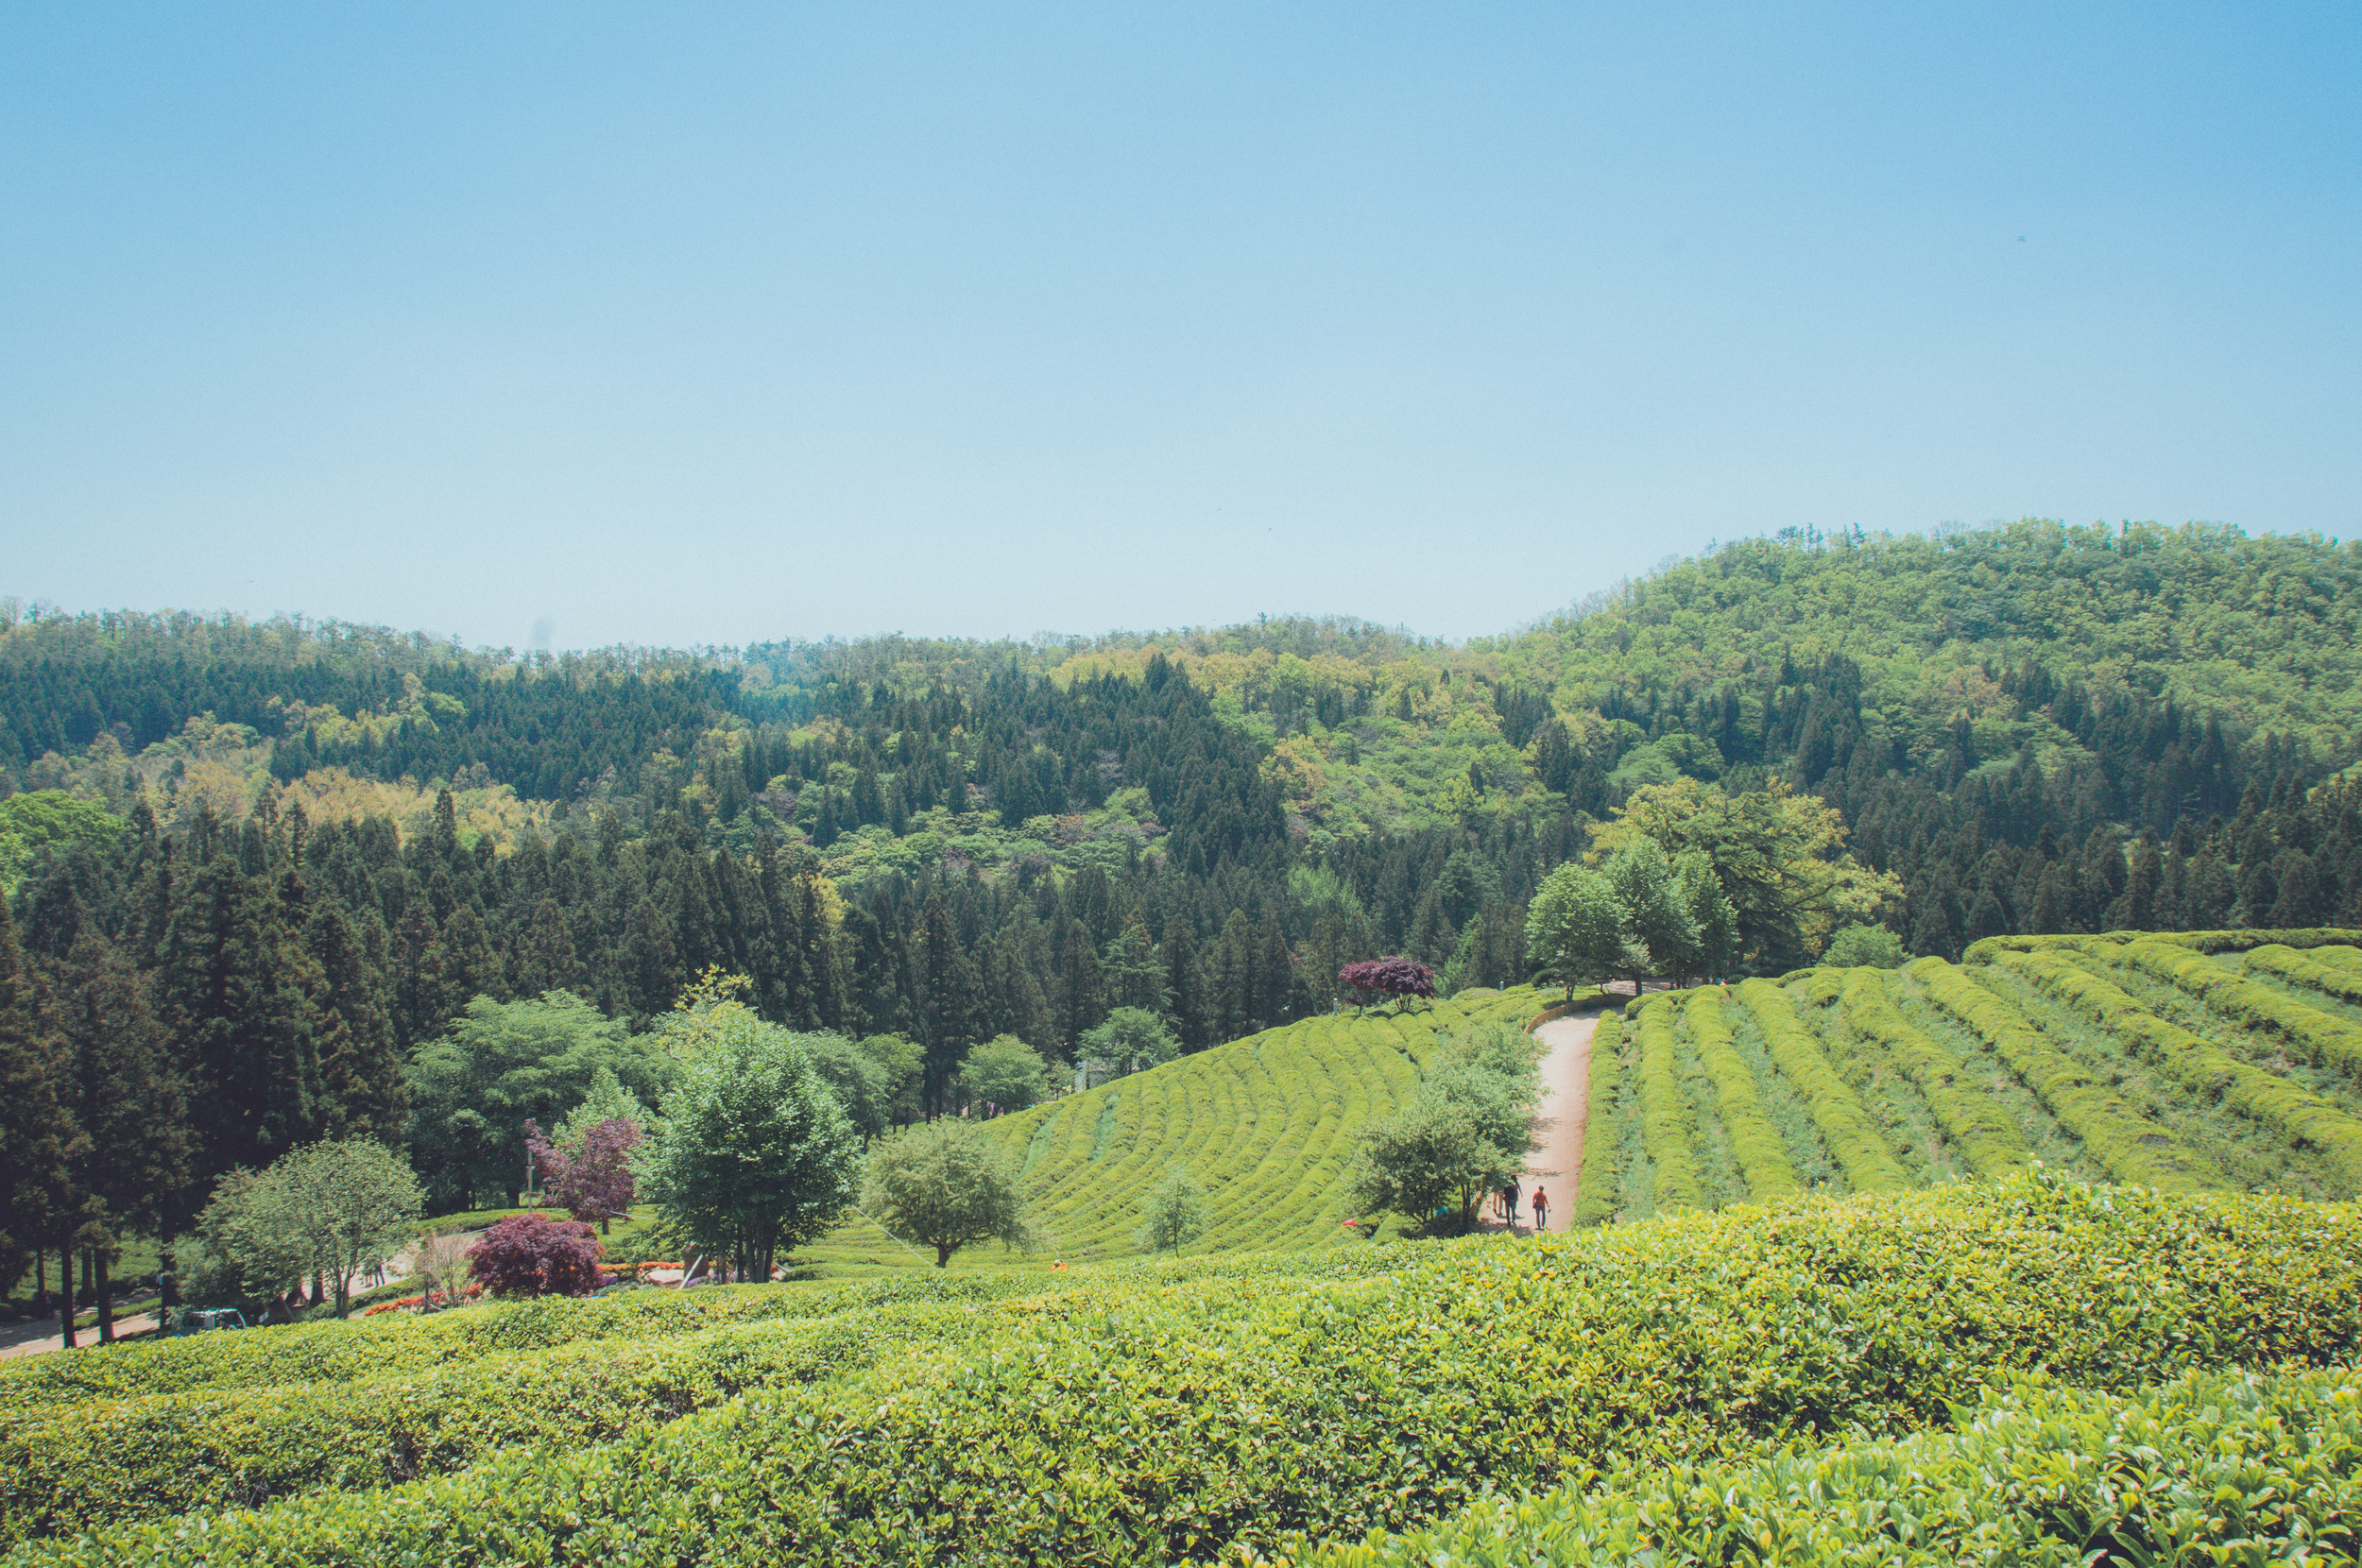 Boseong Green Tea Fields (14 of 21).jpg